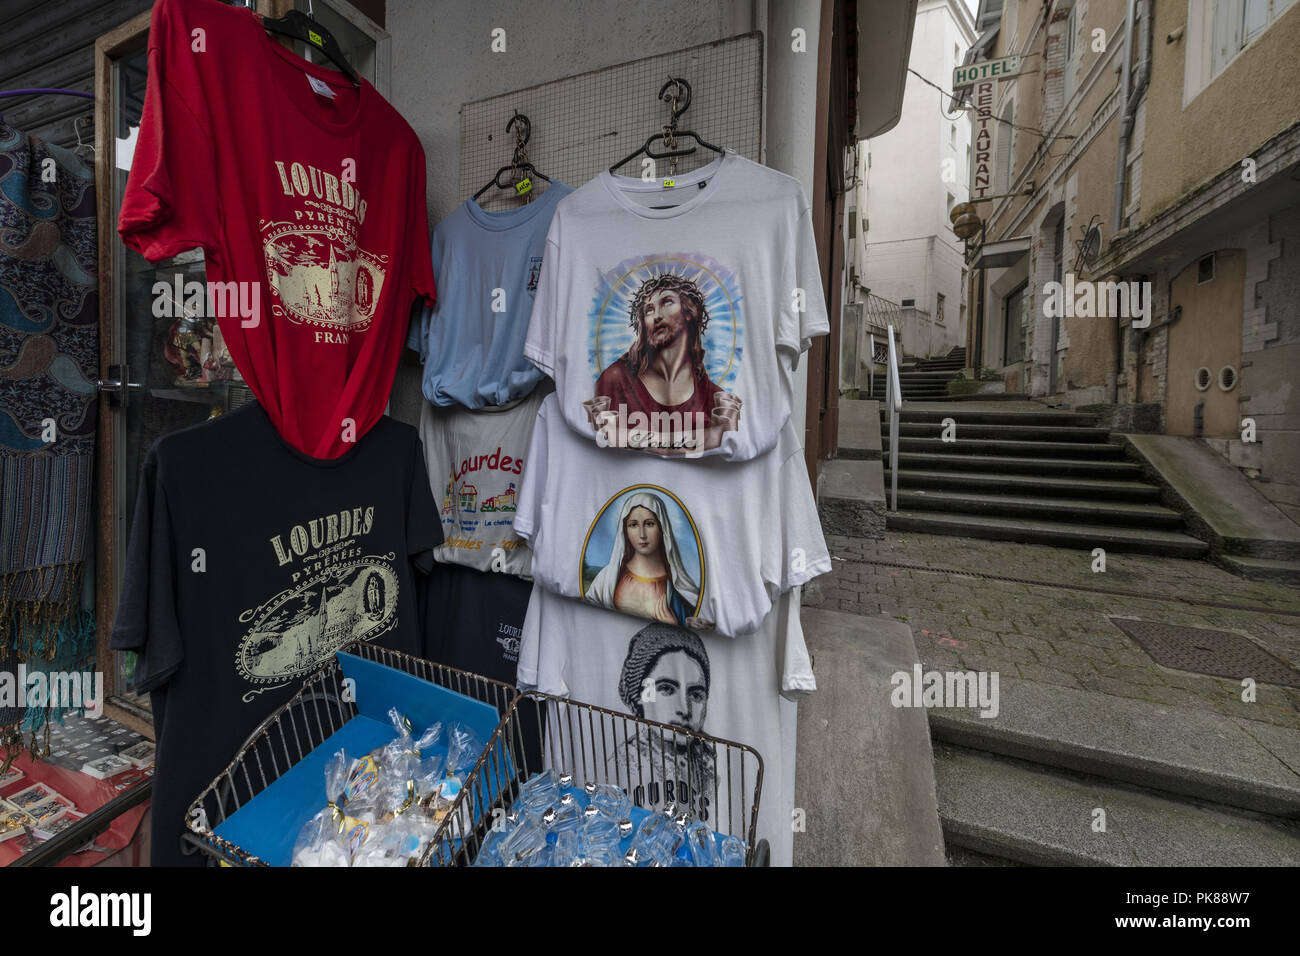 Lourdes, South of France; August 04 2018, Commercial -  Business Side of selling Religion. Lourdes Holy Water - Healing Properties. - Stock Image